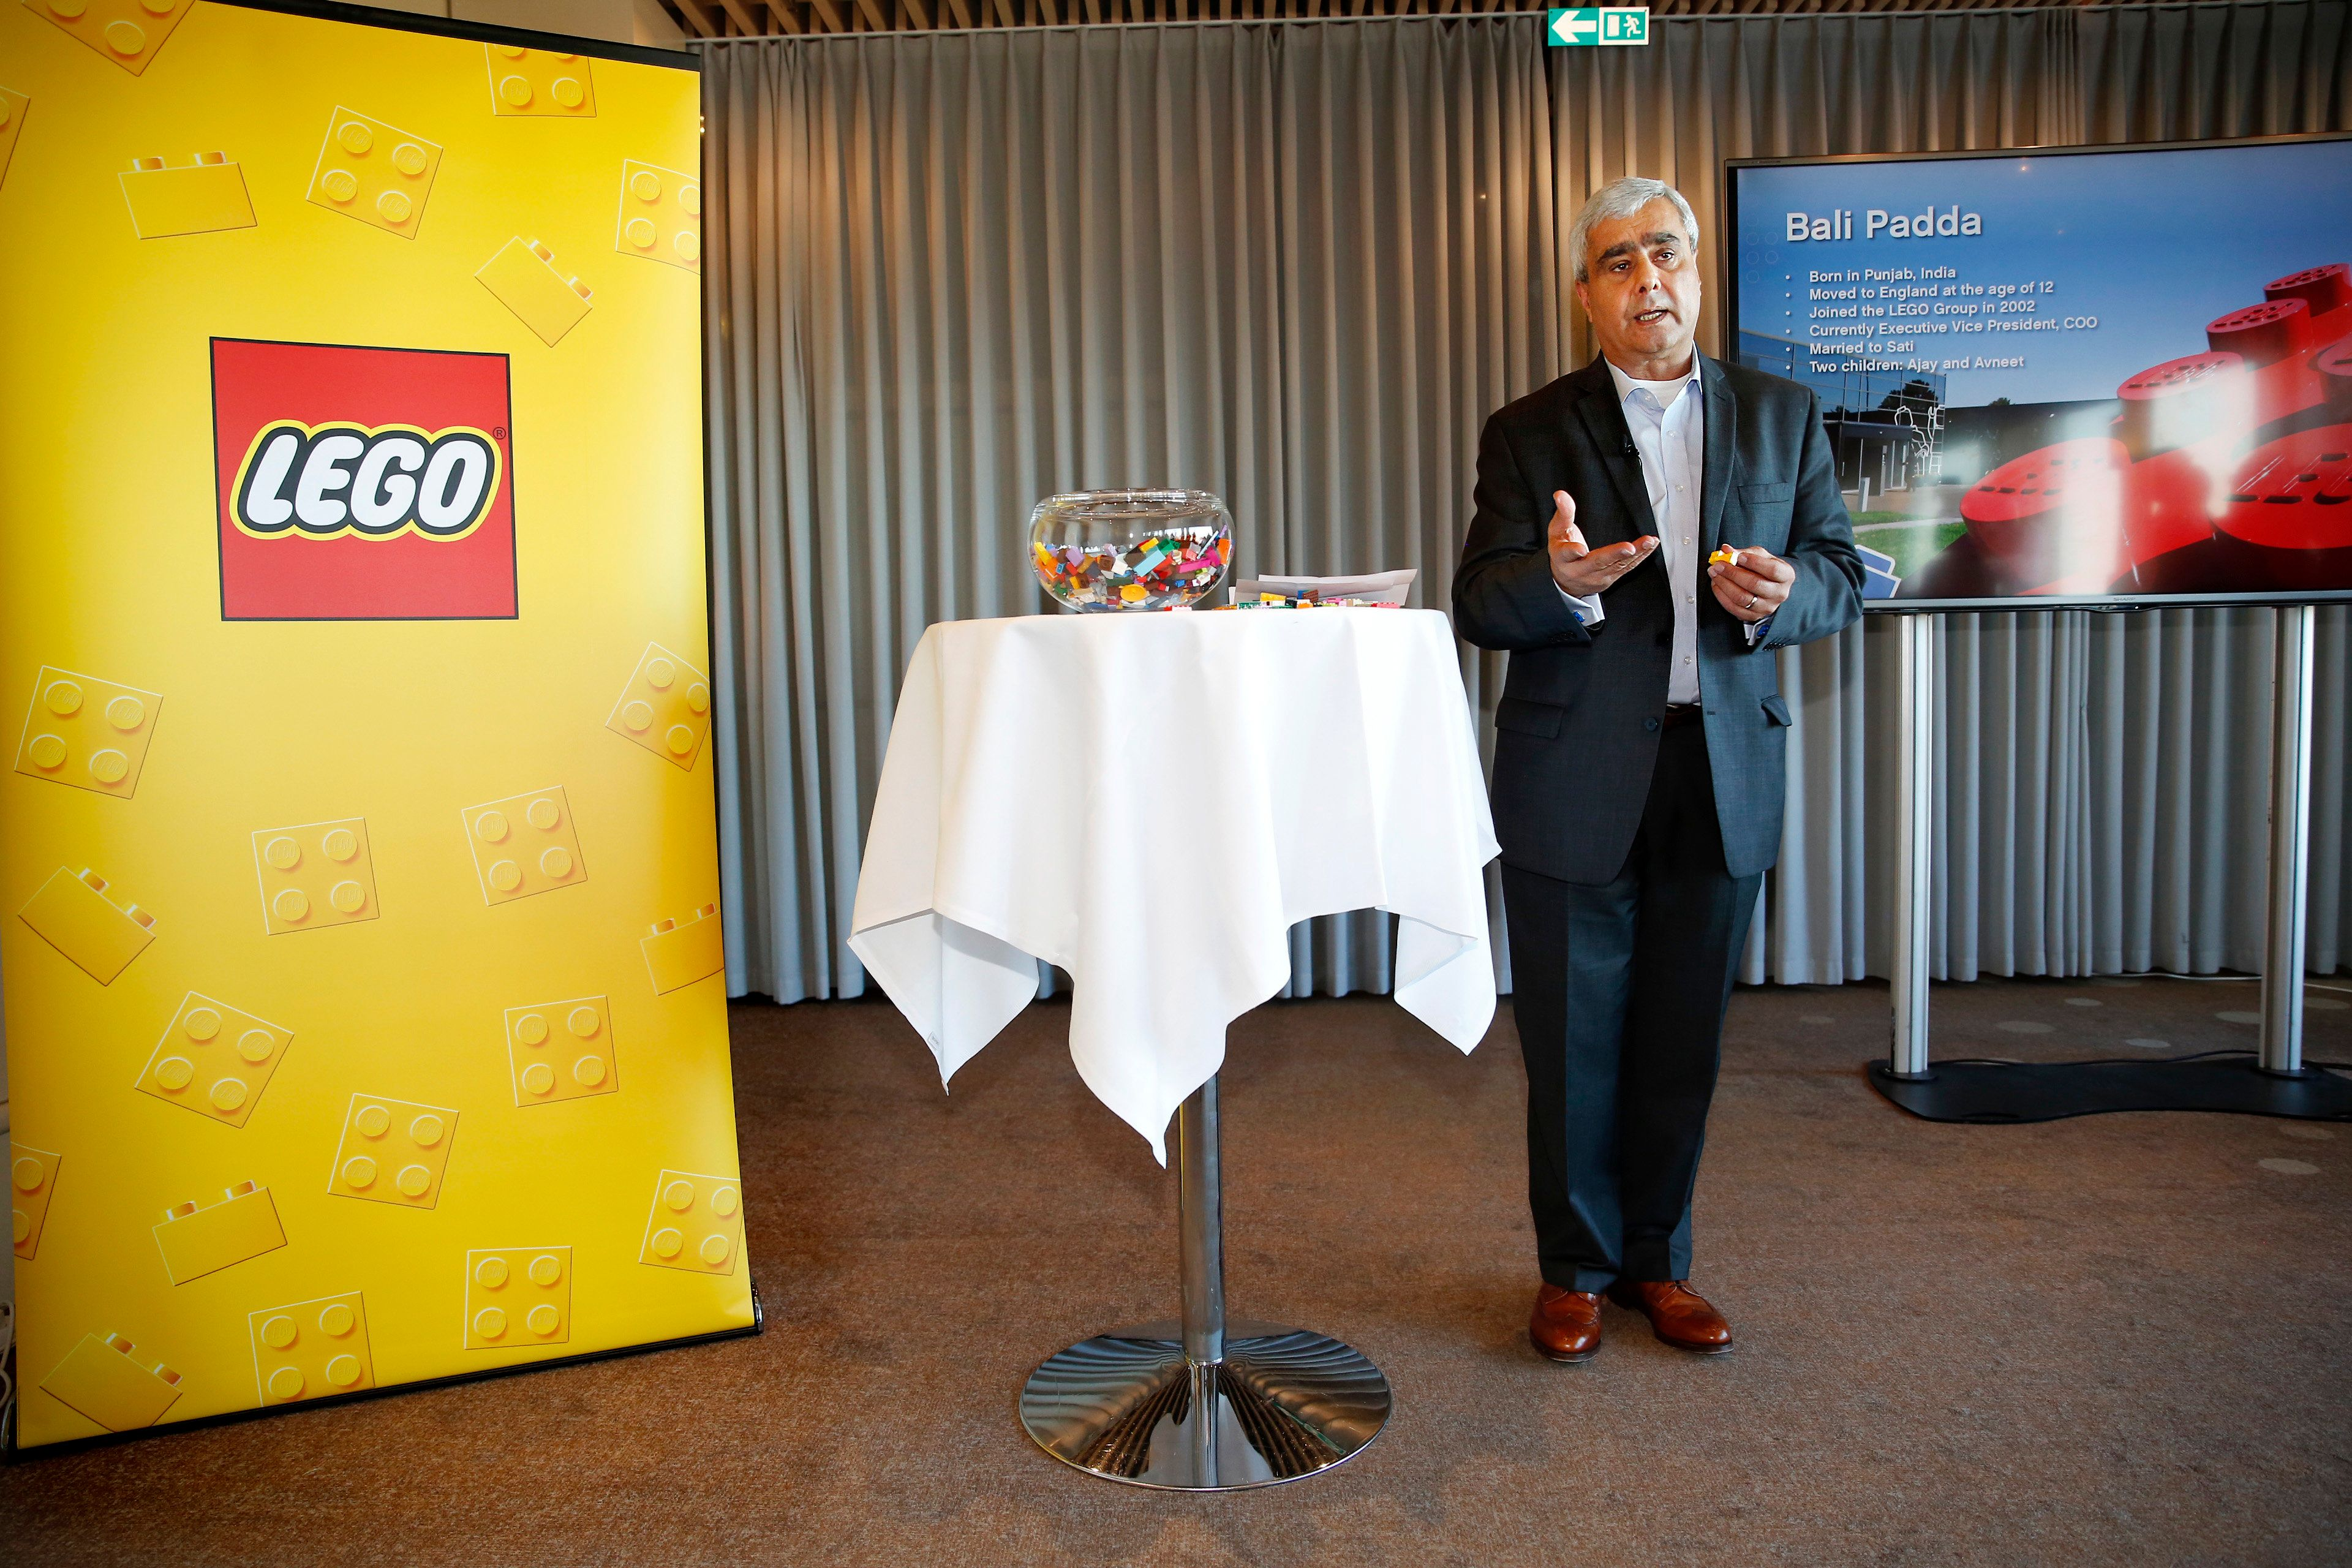 Lego's chief operating officer Bali Padda delivers a speech on December 6, 2016 at a press meeting in Copenhagen.  Danish toy maker Lego on December 6 named Bali Padda as the new chief executive as it unveiled a new structure for the group's activities that would allow it to profit from the brand's 'untapped potential'. / AFP / Scanpix Denmark / Nikolai Linares / Denmark OUT        (Photo credit should read NIKOLAI LINARES/AFP/Getty Images)